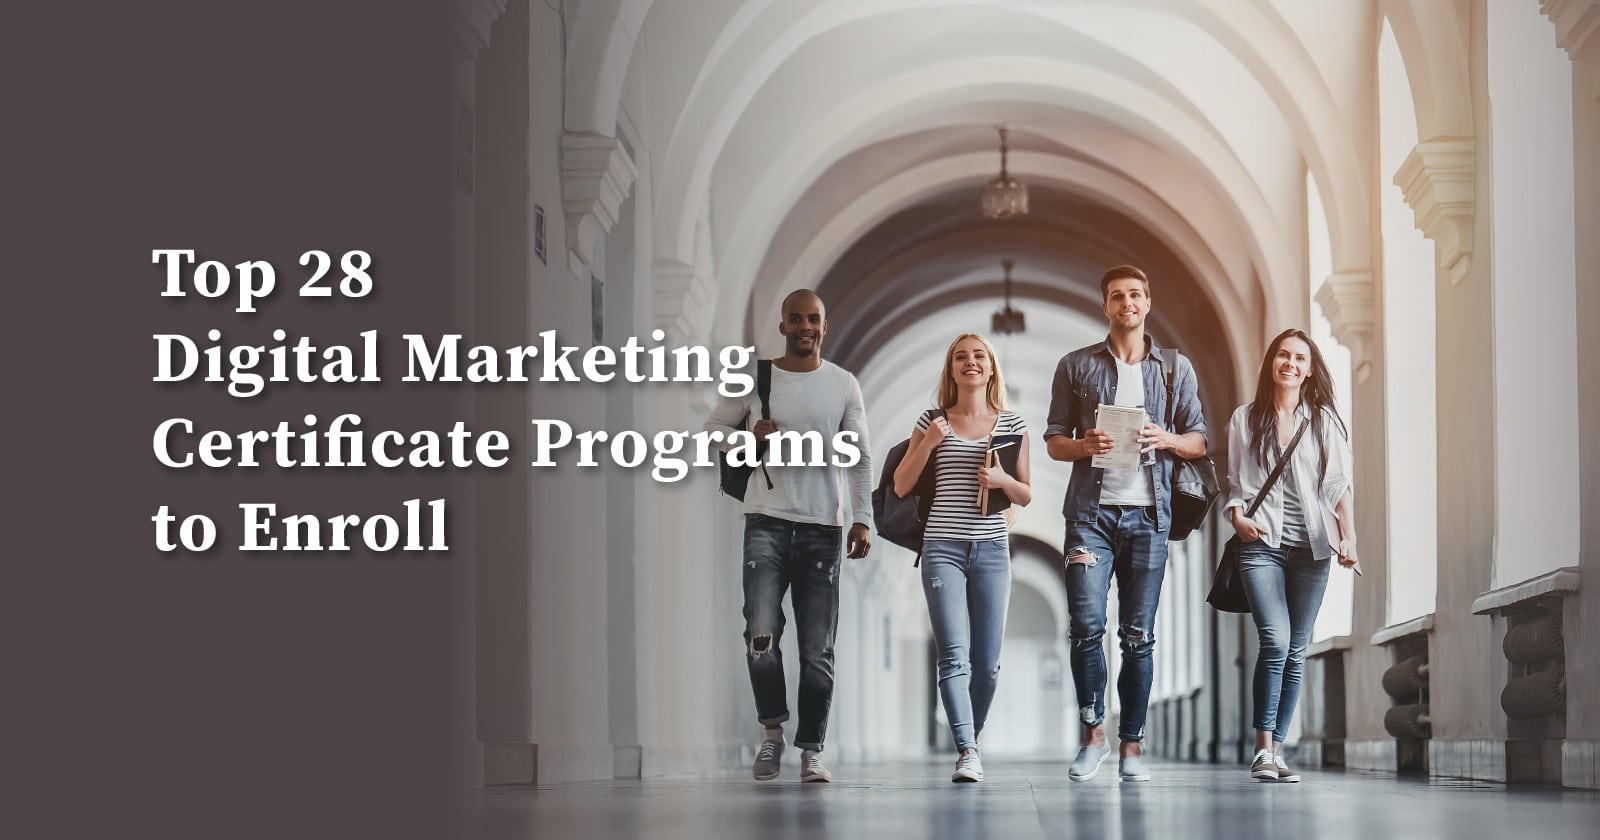 The Top 28 Digital Marketing Certificate Programs To Enroll